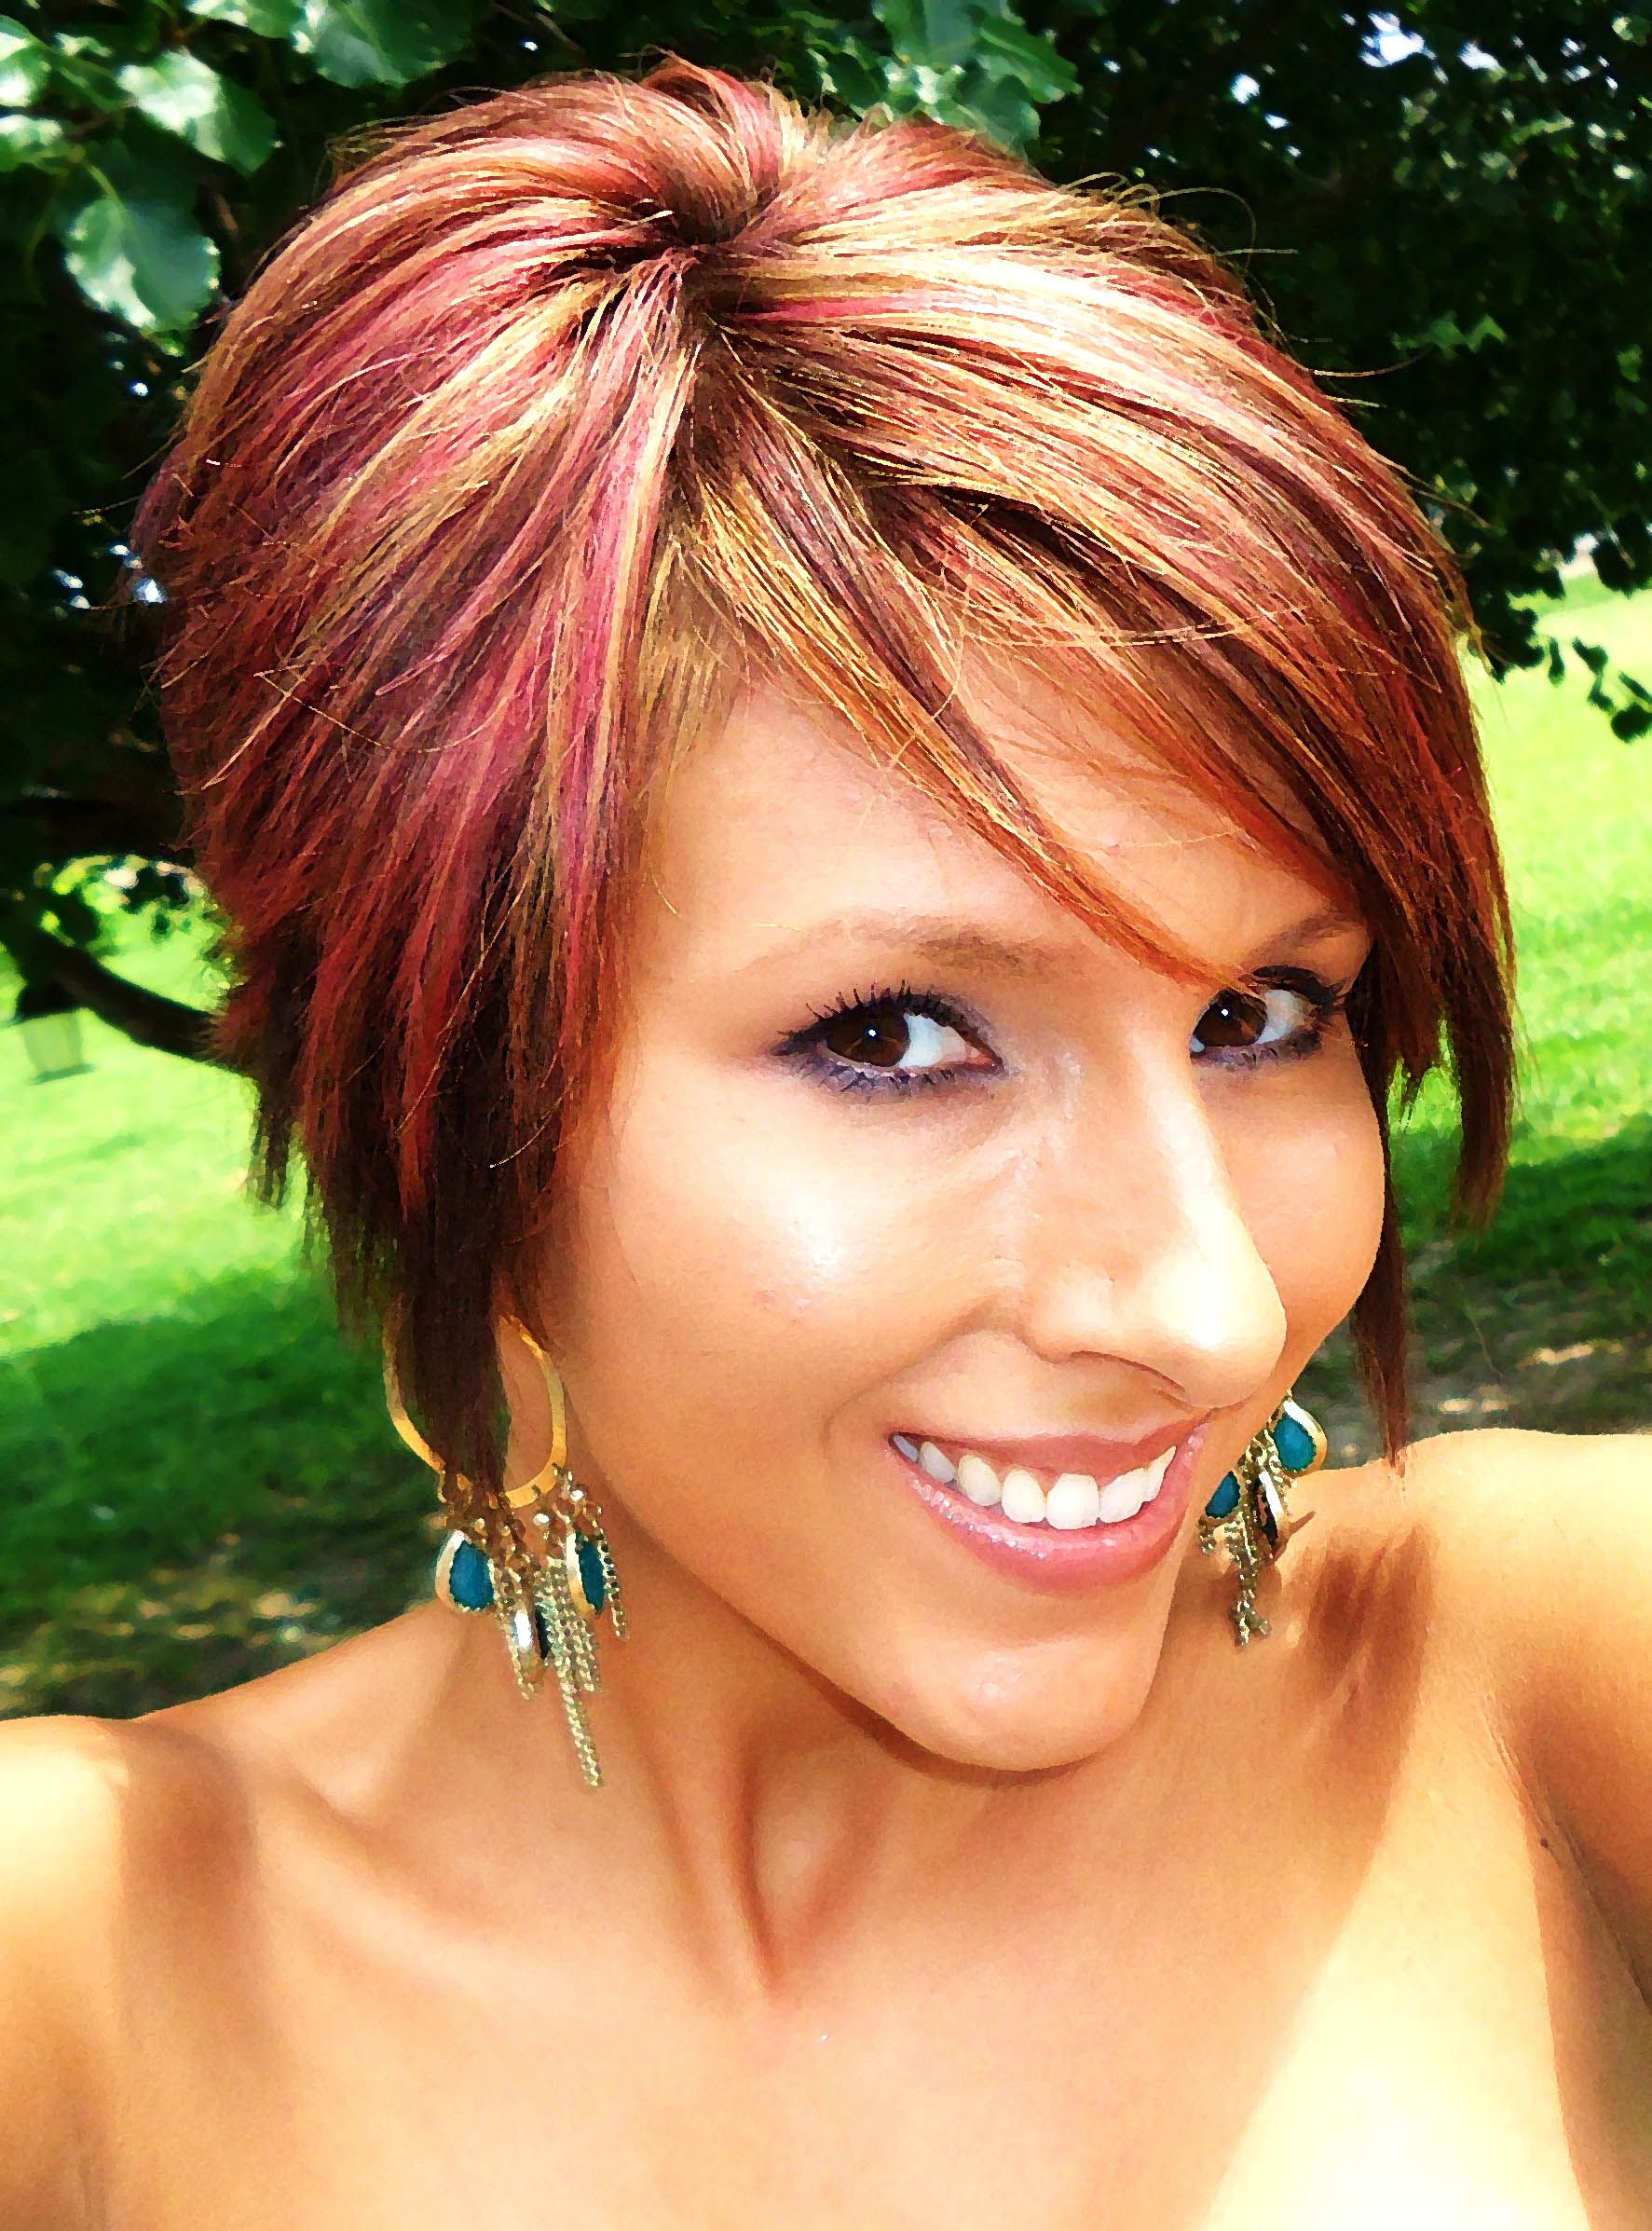 Short boblong pixie red highlights not so much the color but the